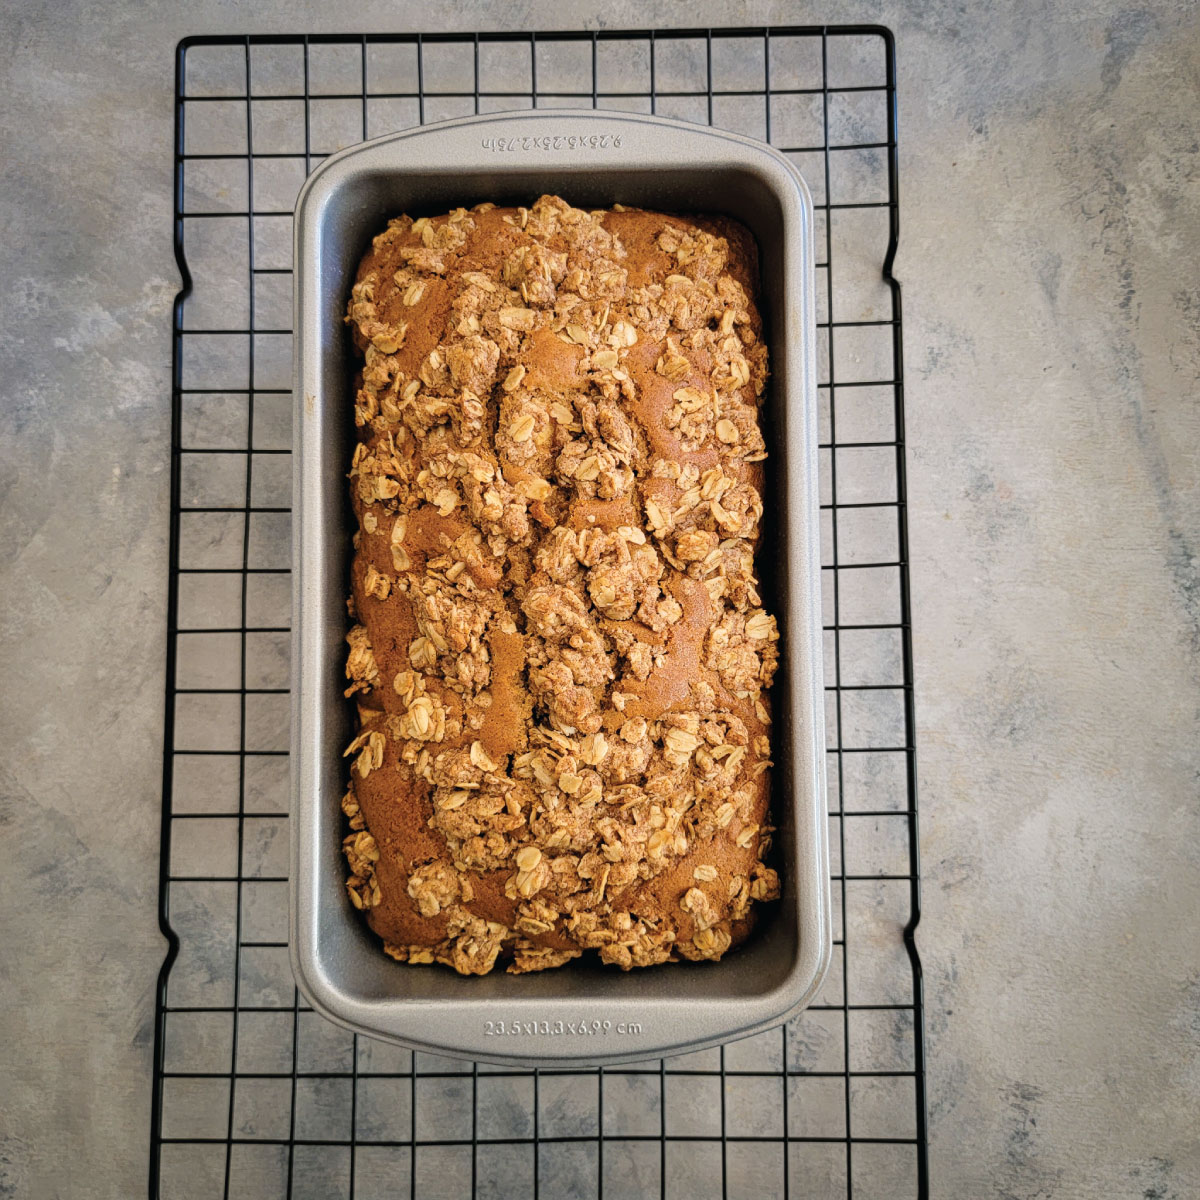 apple bread sliced and placed on a plate to serve